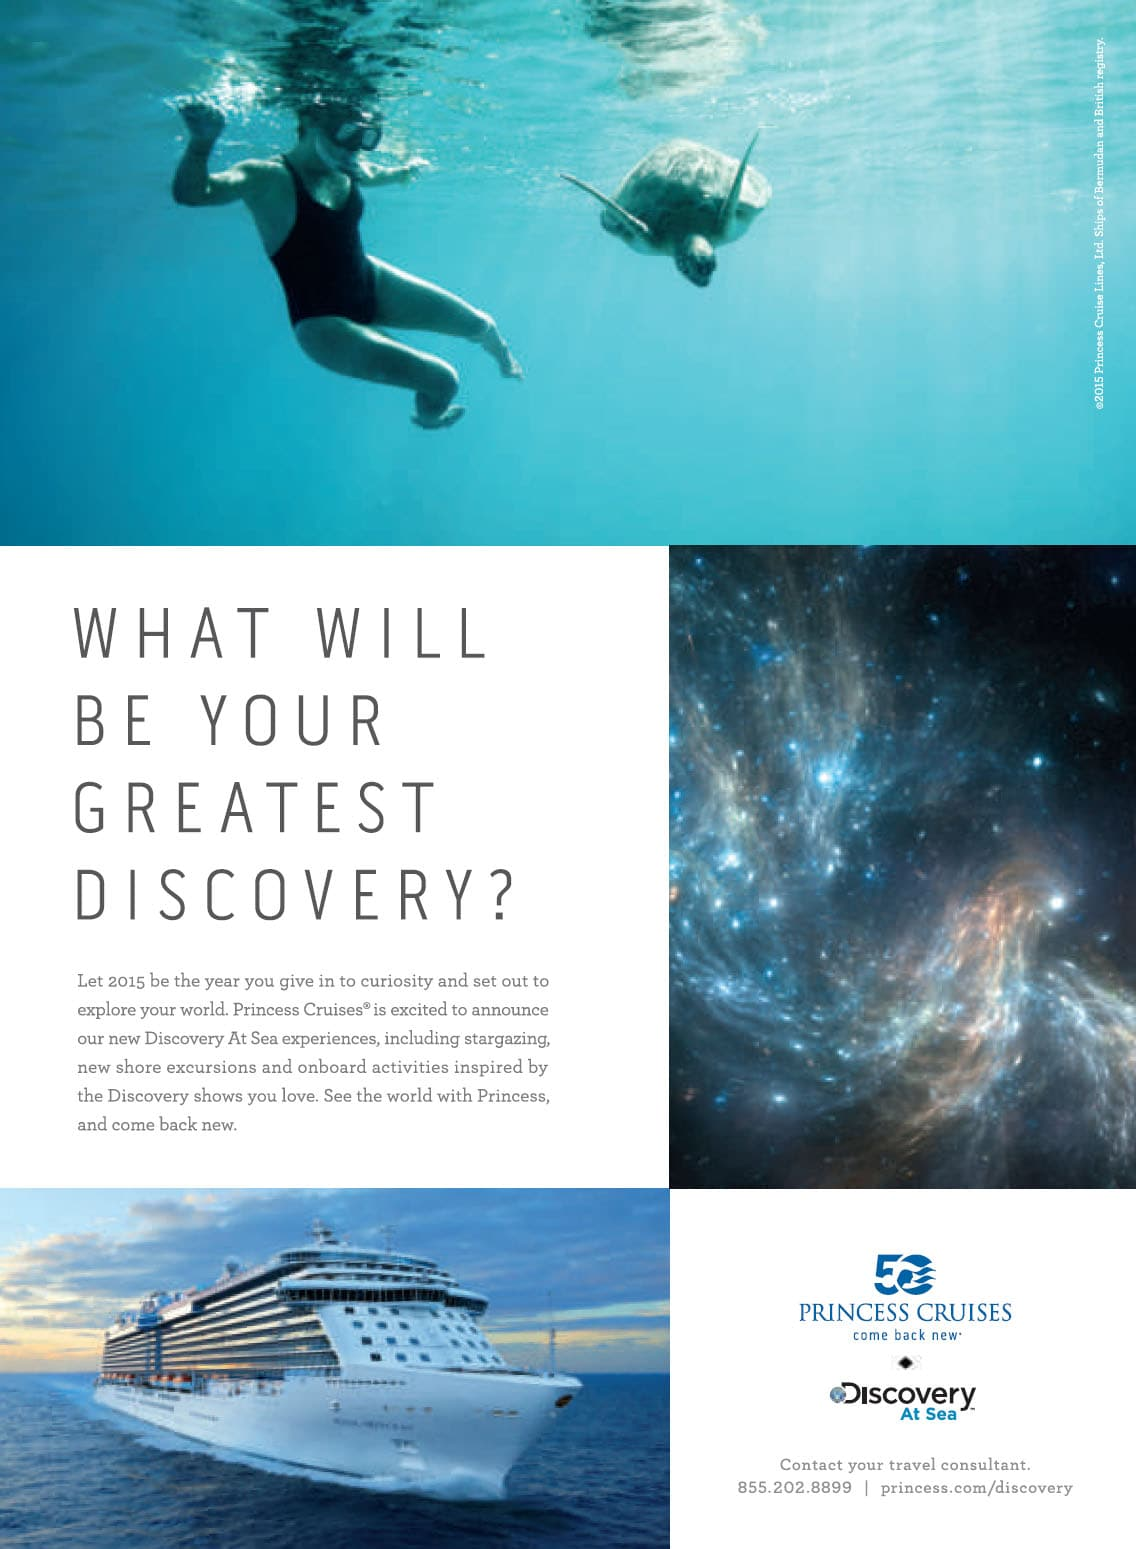 Princess Cruises Launches 2015 Come Back New Advertising